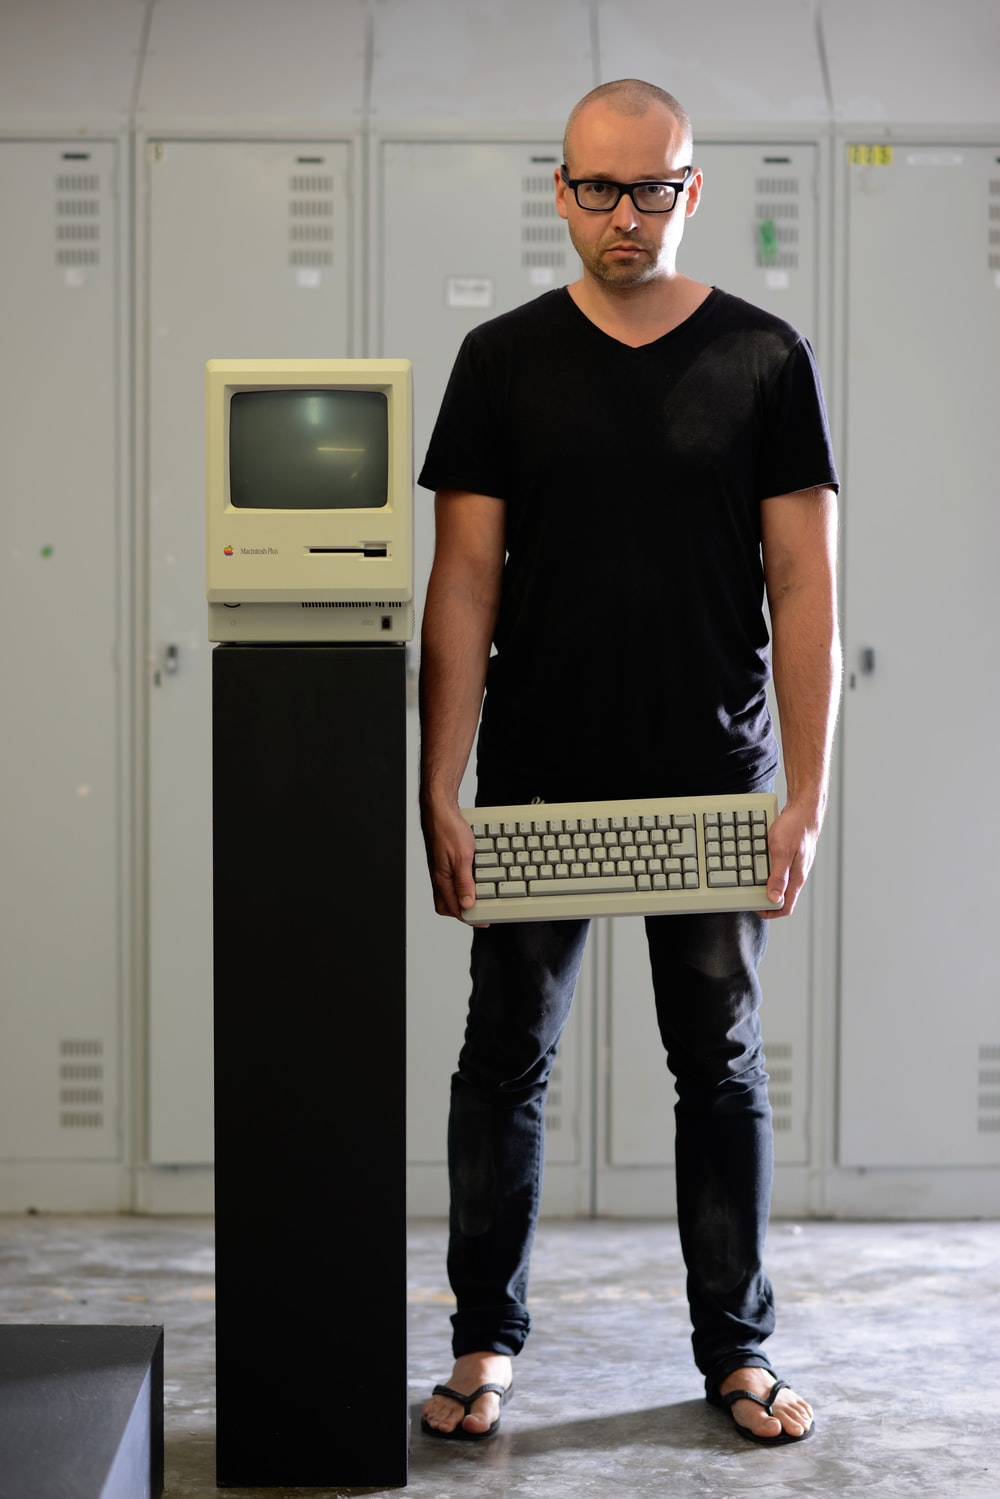 man in black shirt holding computer keyboard